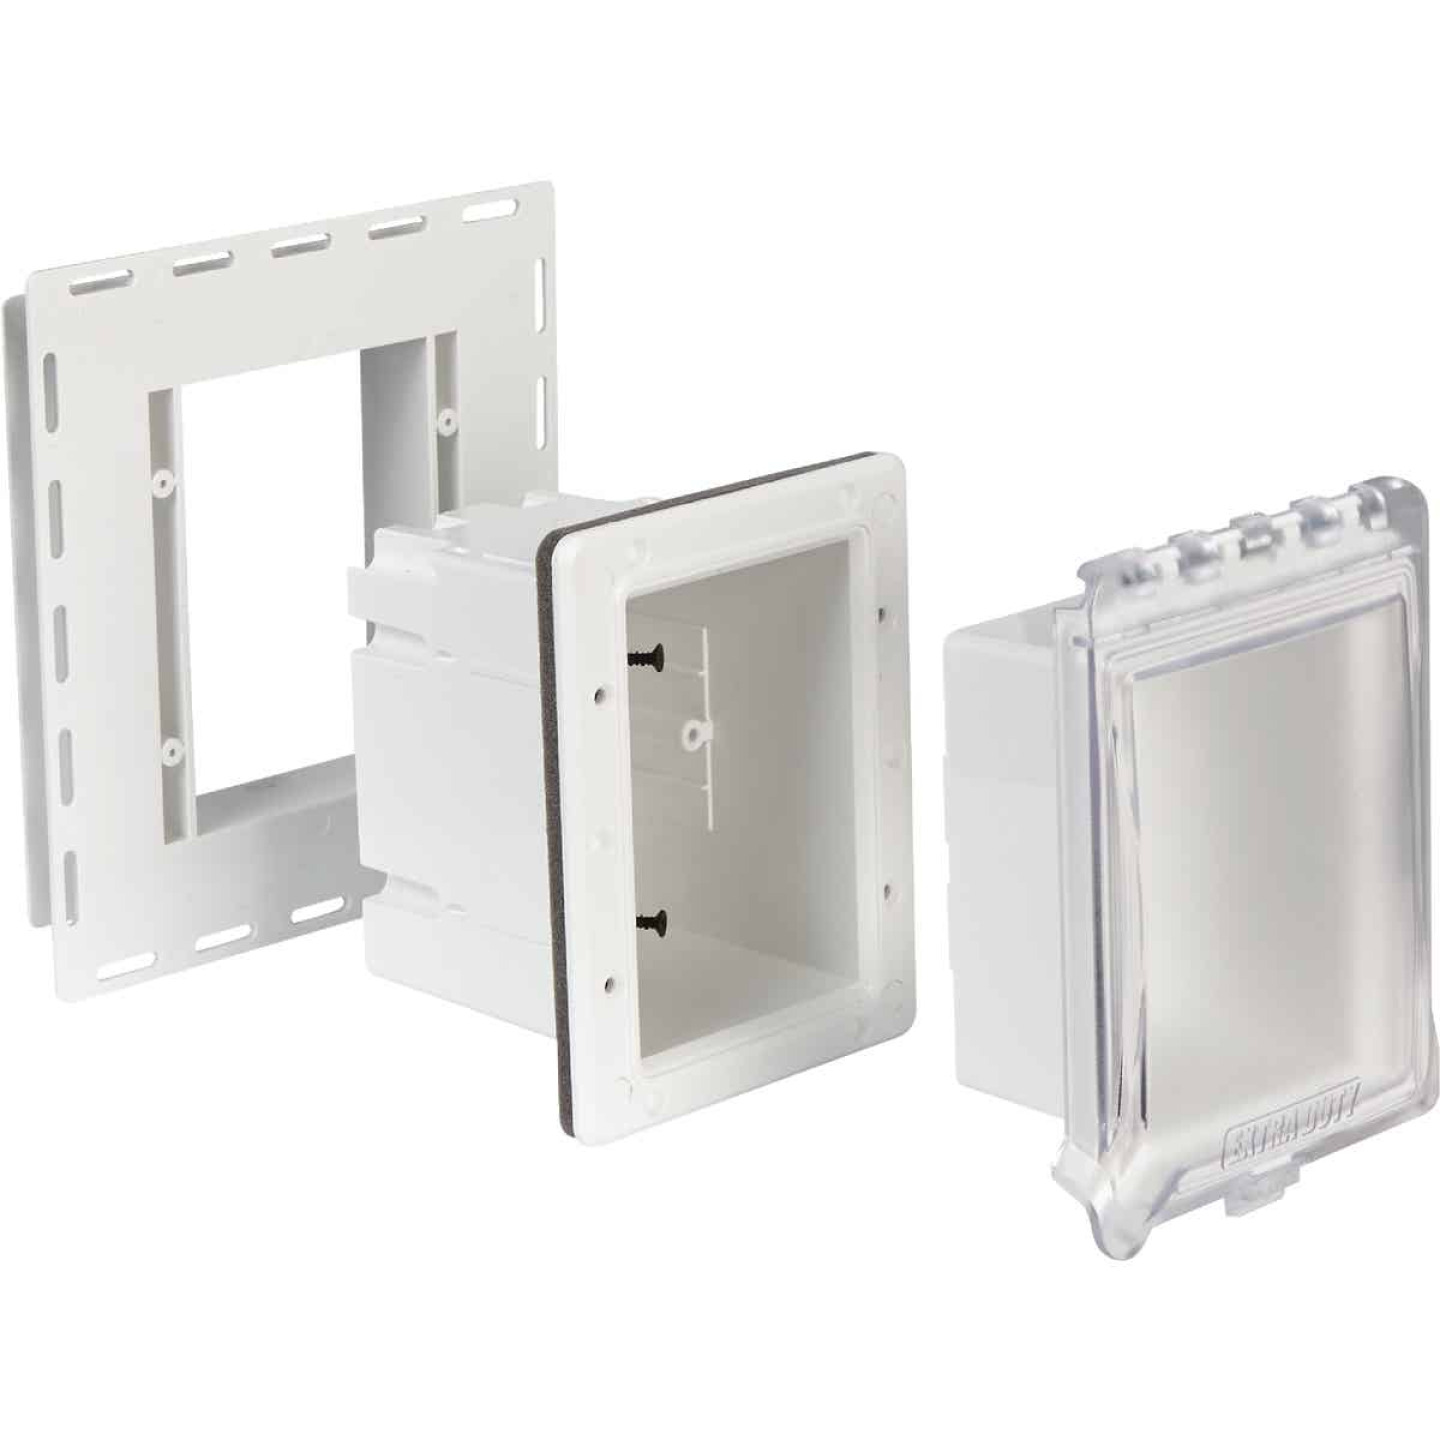 TayMac White Vertical/Horizontal Non-Metallic Recessed Outdoor Outlet Kit Image 3